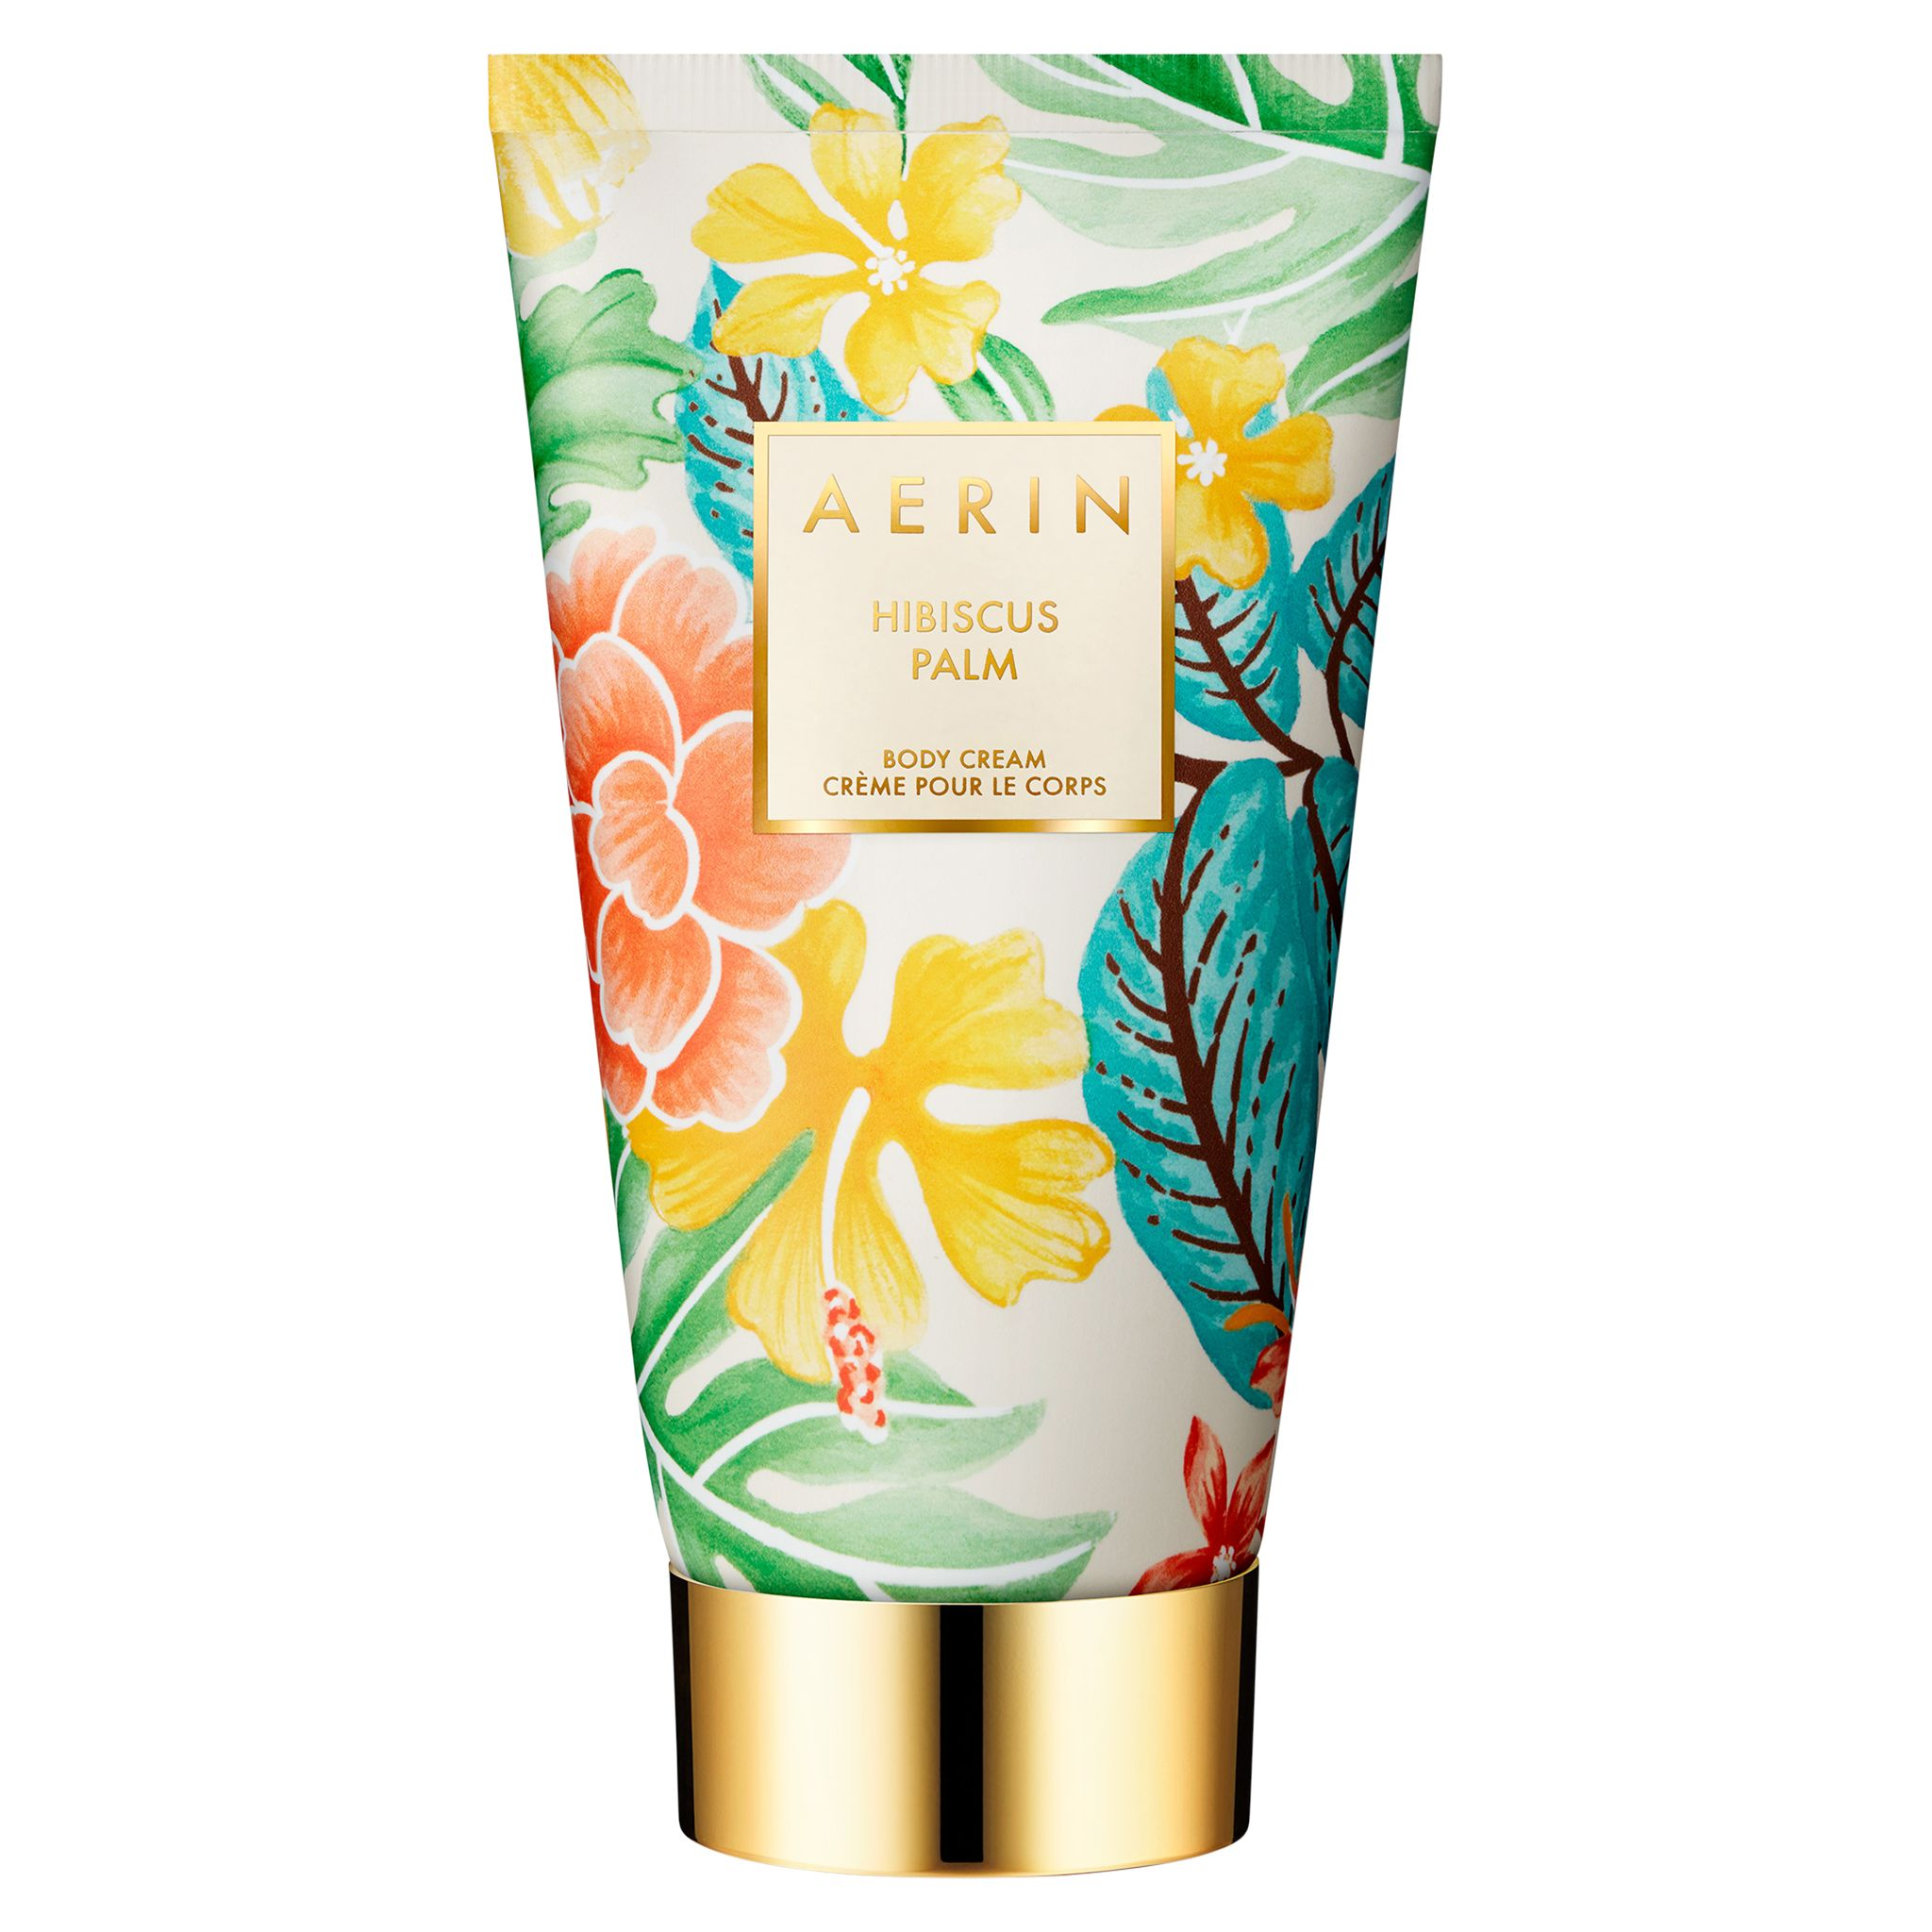 AERIN AERIN Hibiscus Palm Body Cream, 150ml